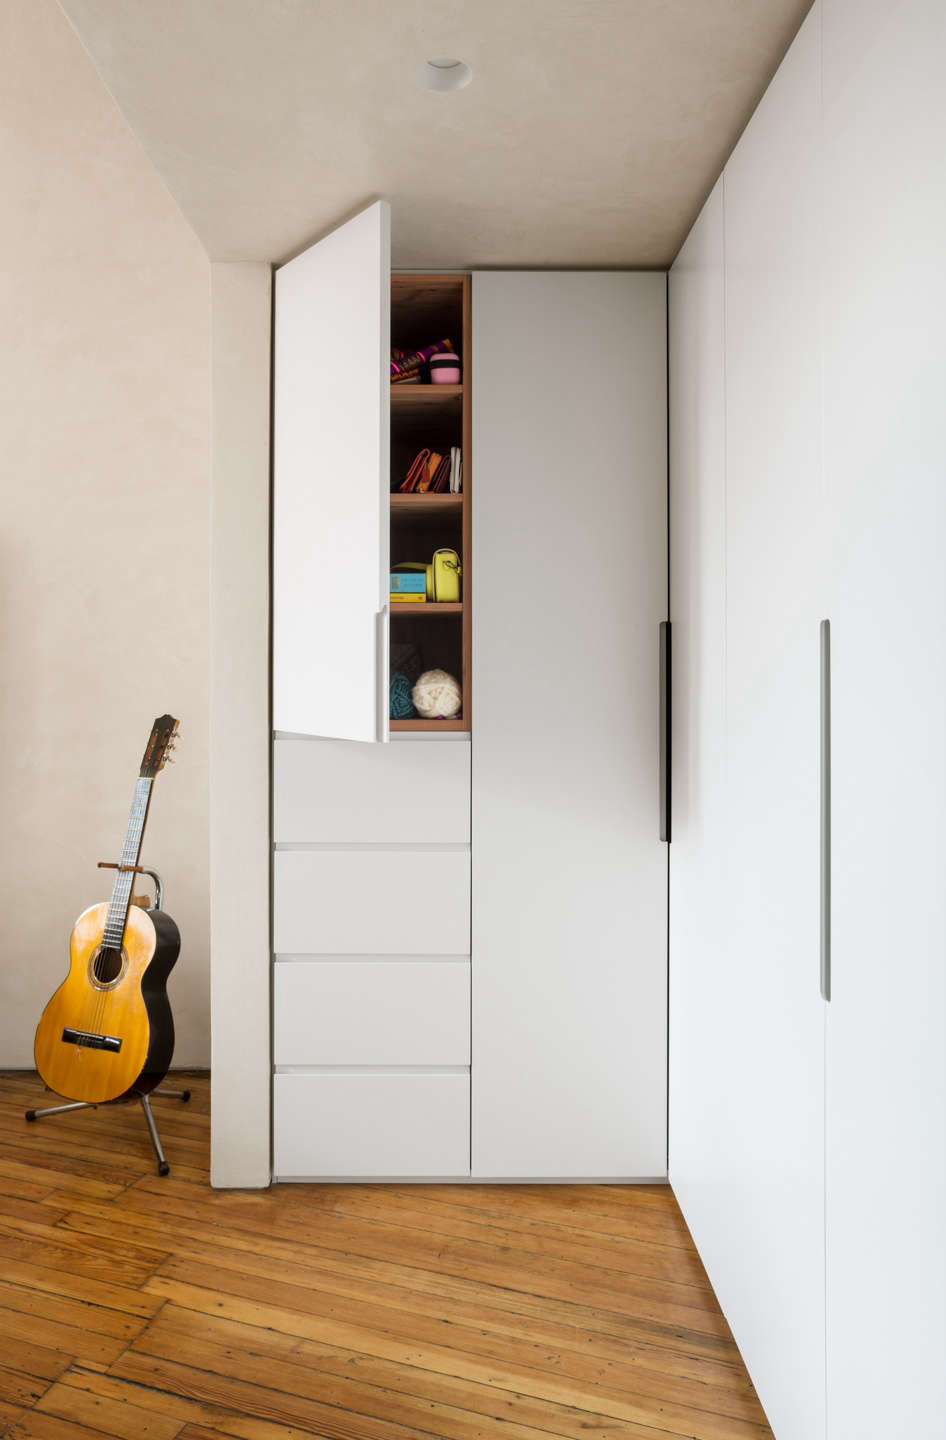 Archive Dive: Our 10 Favorite Built-in Storage Cabinets